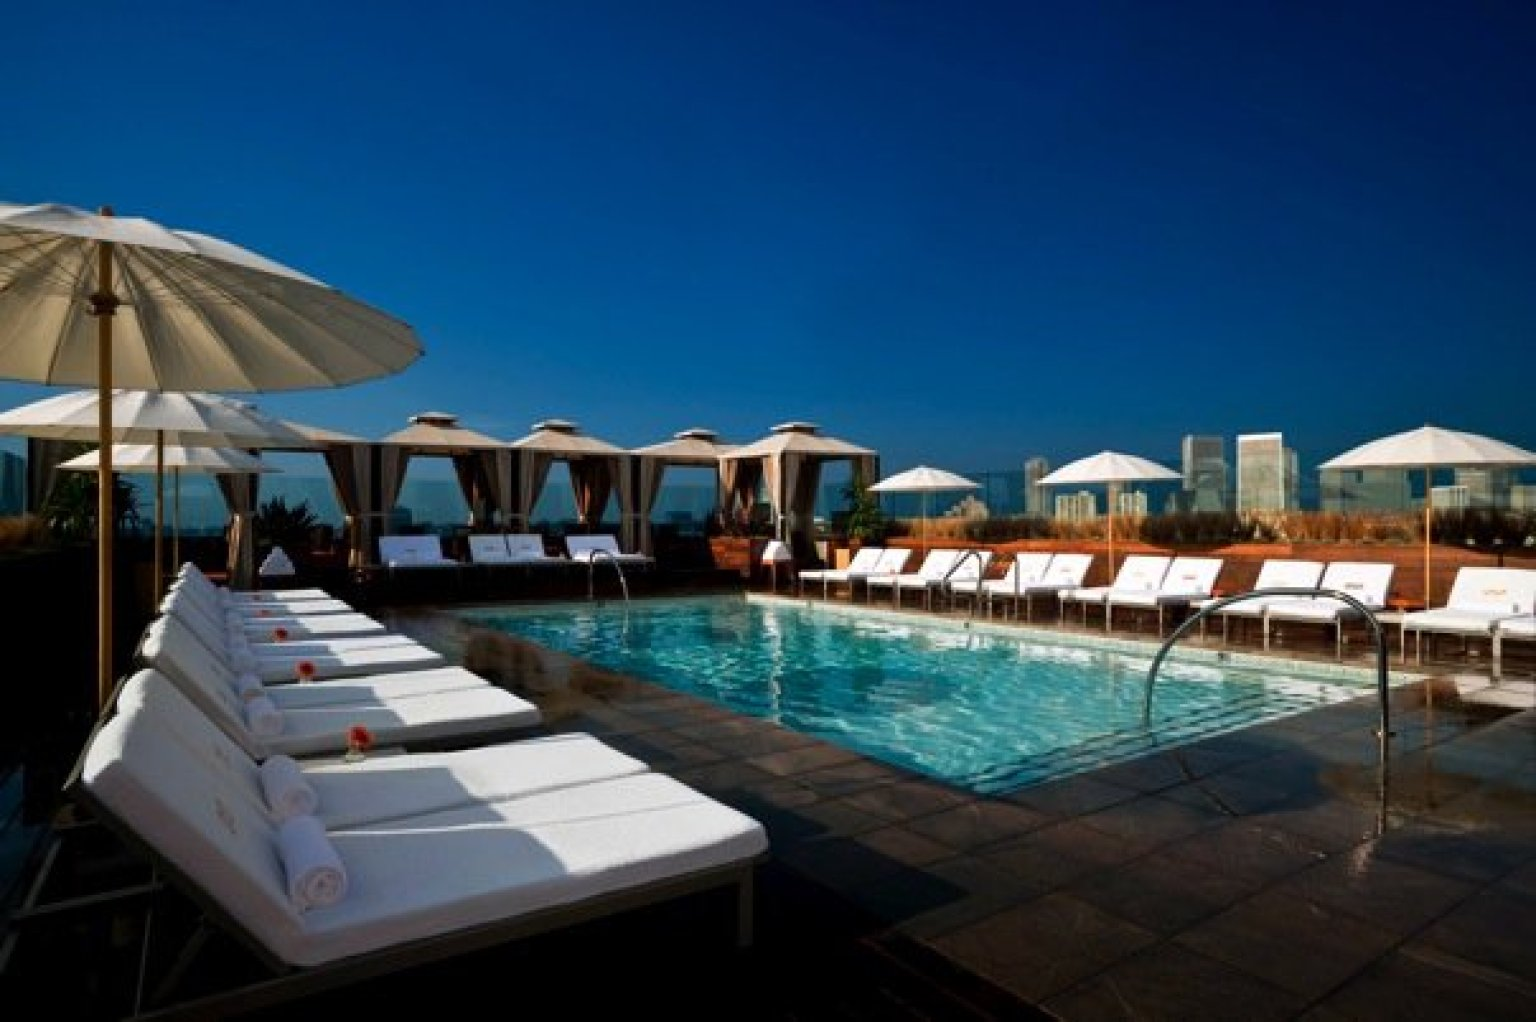 Best hotel pools in la these pools are an art form - Hotels in dundalk with swimming pool ...